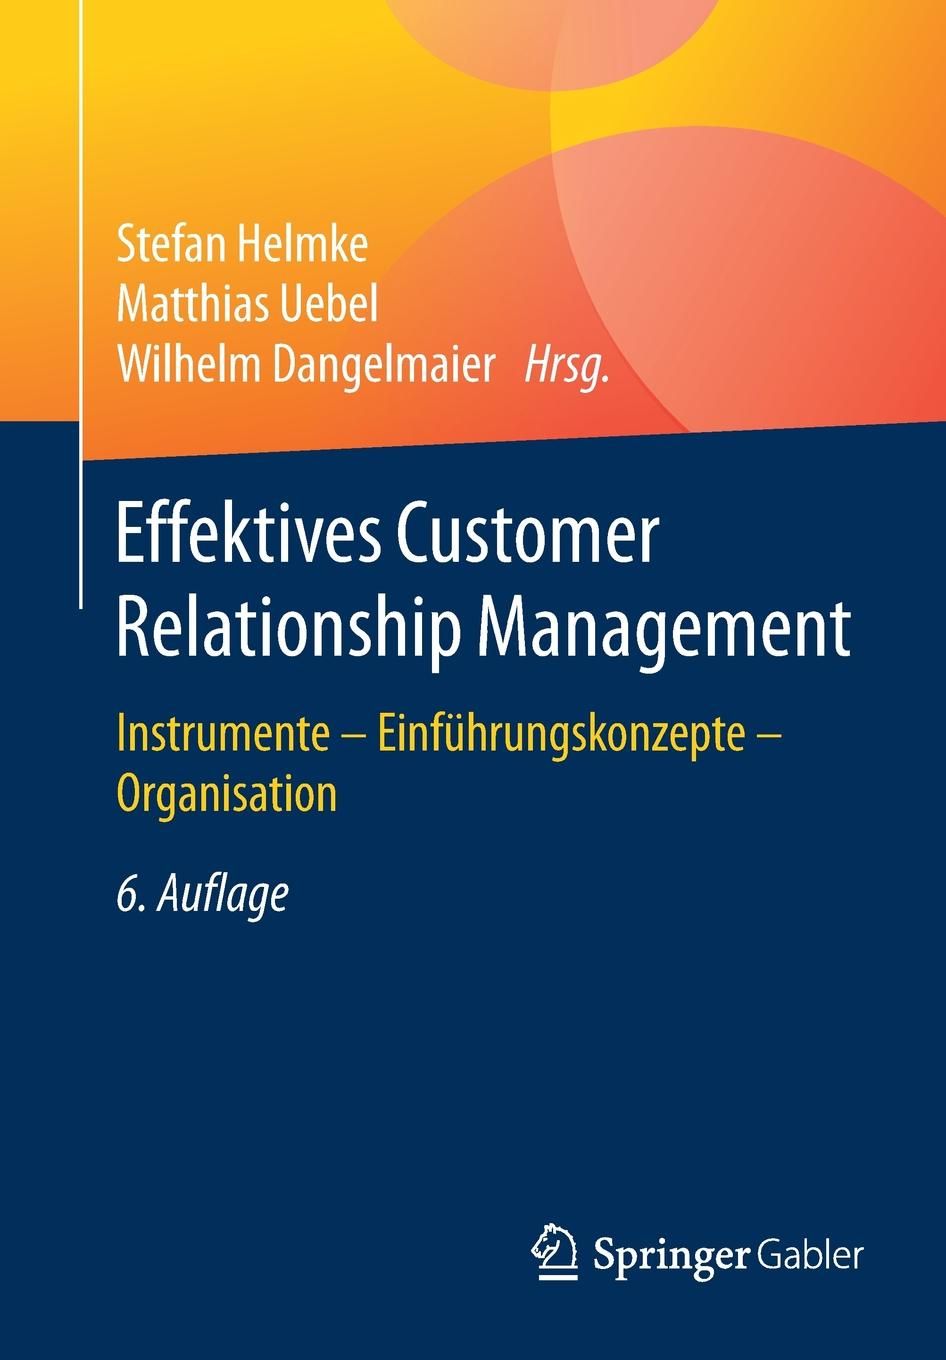 Effektives Customer Relationship Management. Instrumente - Einfuhrungskonzepte - Organisation aga kamilla it fur kunden qualitatsmanagement bei customer relationship management